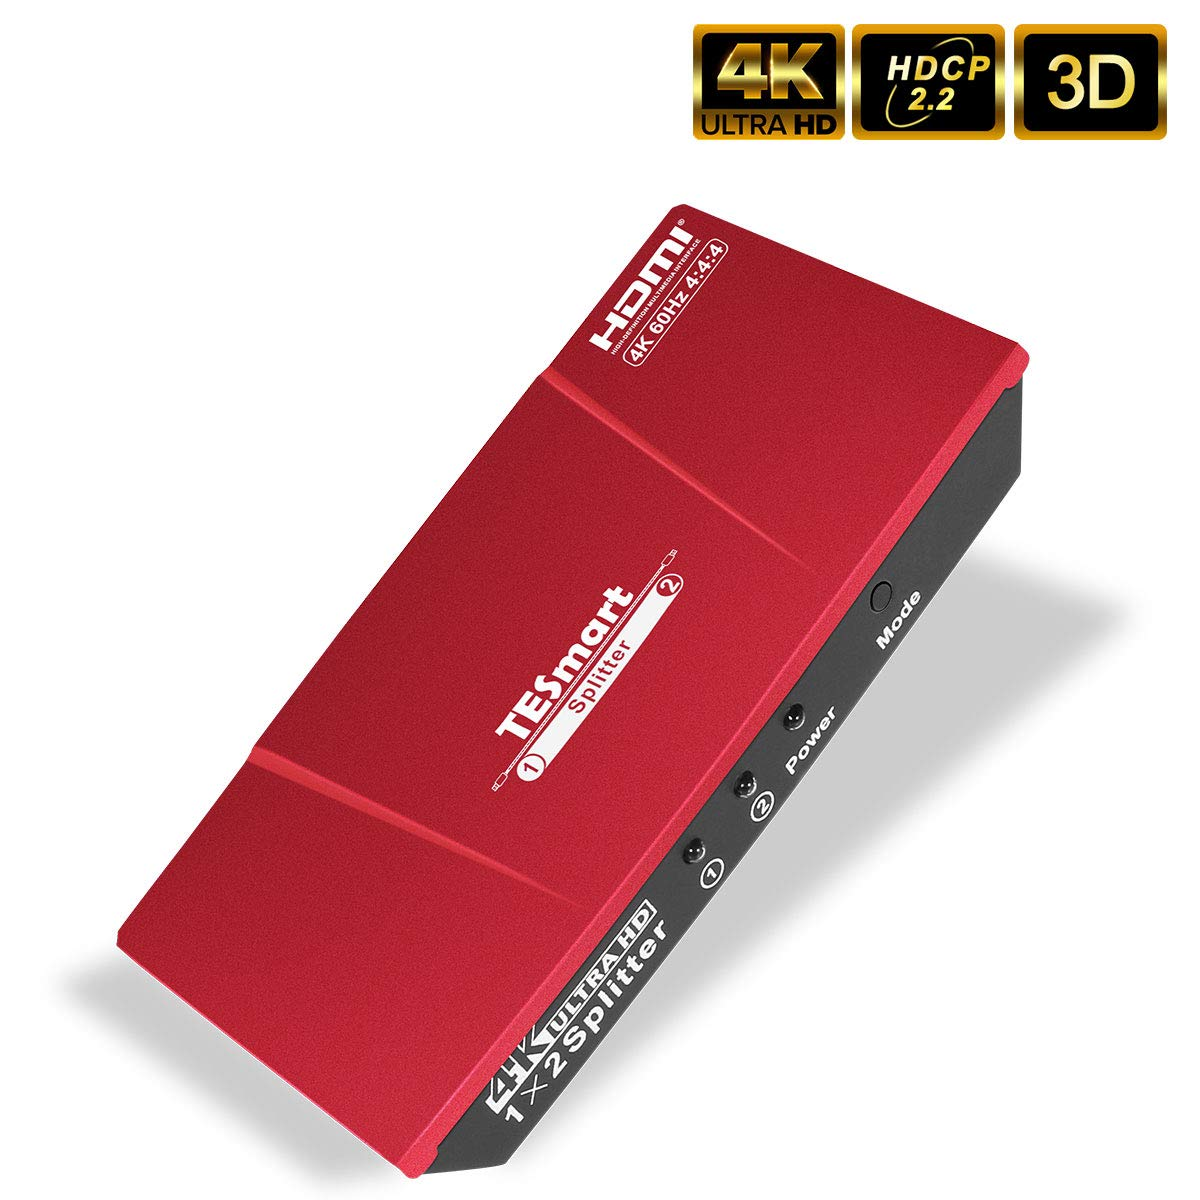 TESmart HDMI 2.0 Splitter 1x2 4K@60Hz 4:4:4 Powered 1 in 2 Out HDMI Splitter for Dual Monitor Ultra HD 4K@60Hz 4:4:4 Compatible with PC PS3 PS4 Xbox-HDMI 2.0, HDCP 2.2, HDR, RGB, YUV, 18 Gbps (Red)